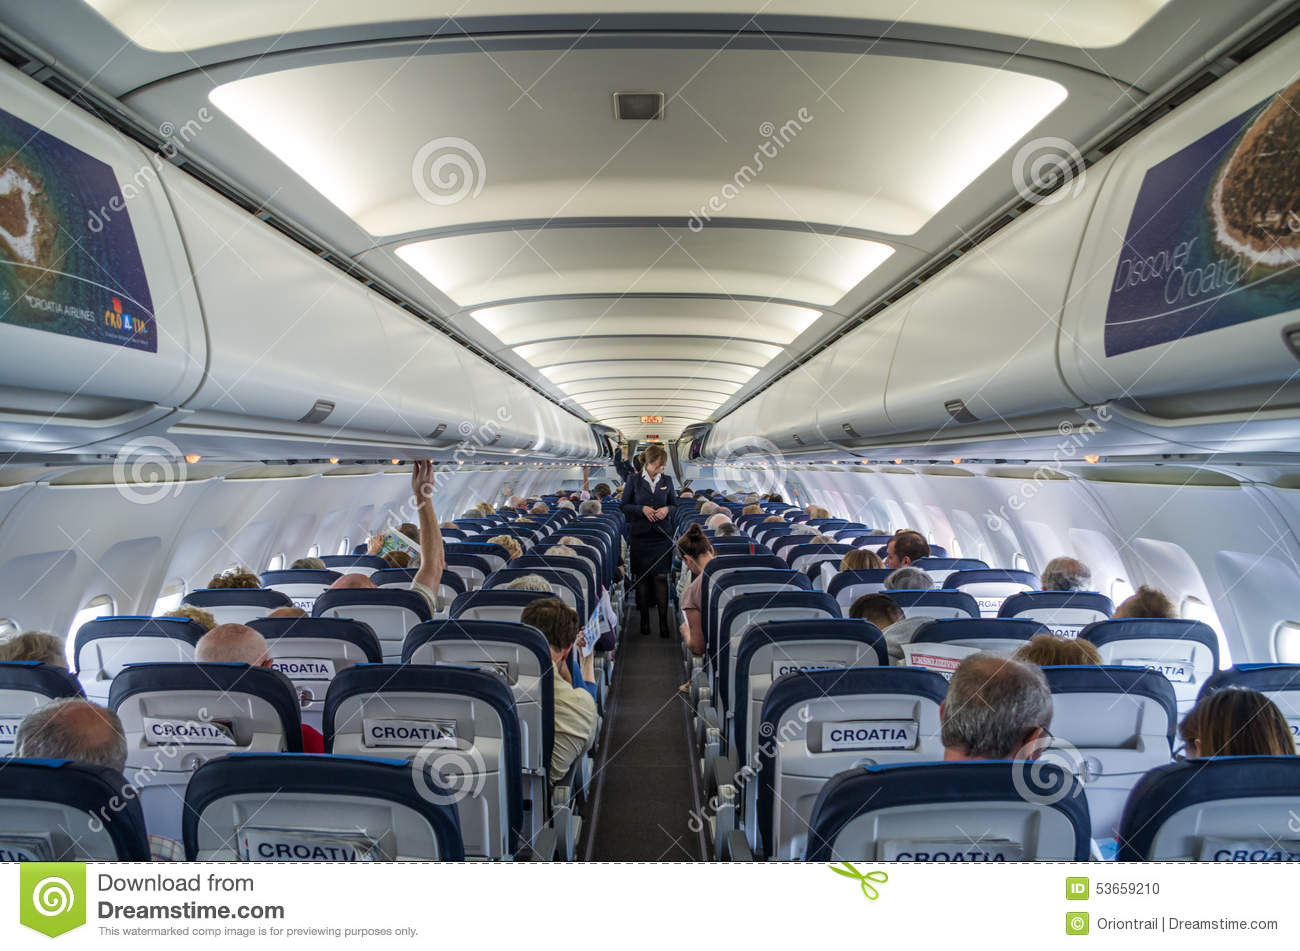 Fente croatie 6 mars 2015 passagers l 39 int rieur d for L interieur d un avion